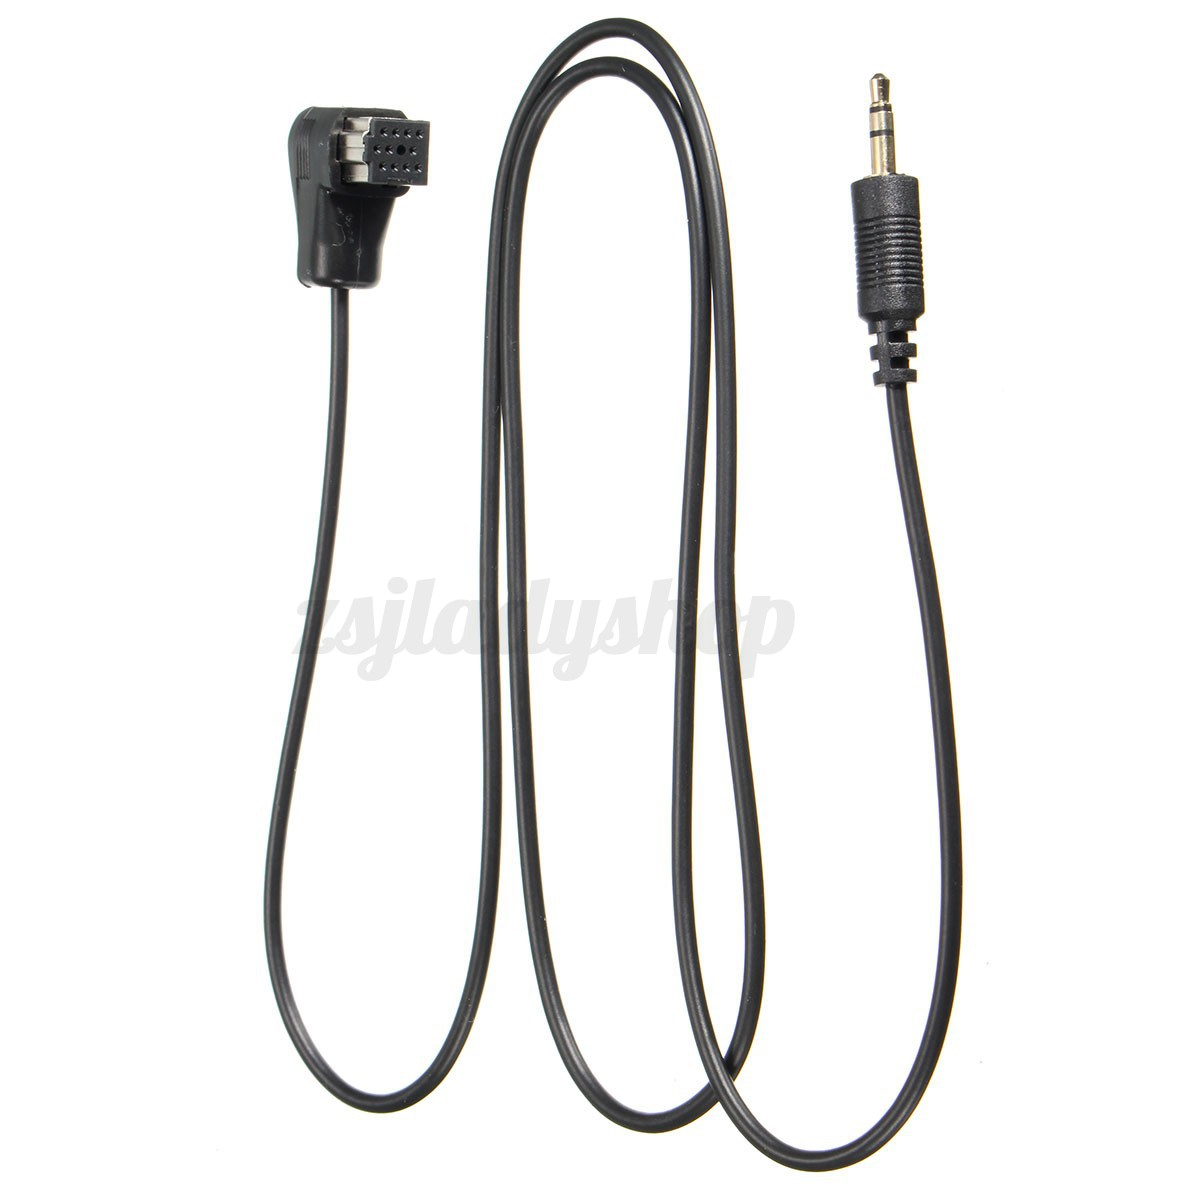 3 5mm Aux Input Cable To Car Pioneer Stereo Headunit Ip Bus Input Adapter New